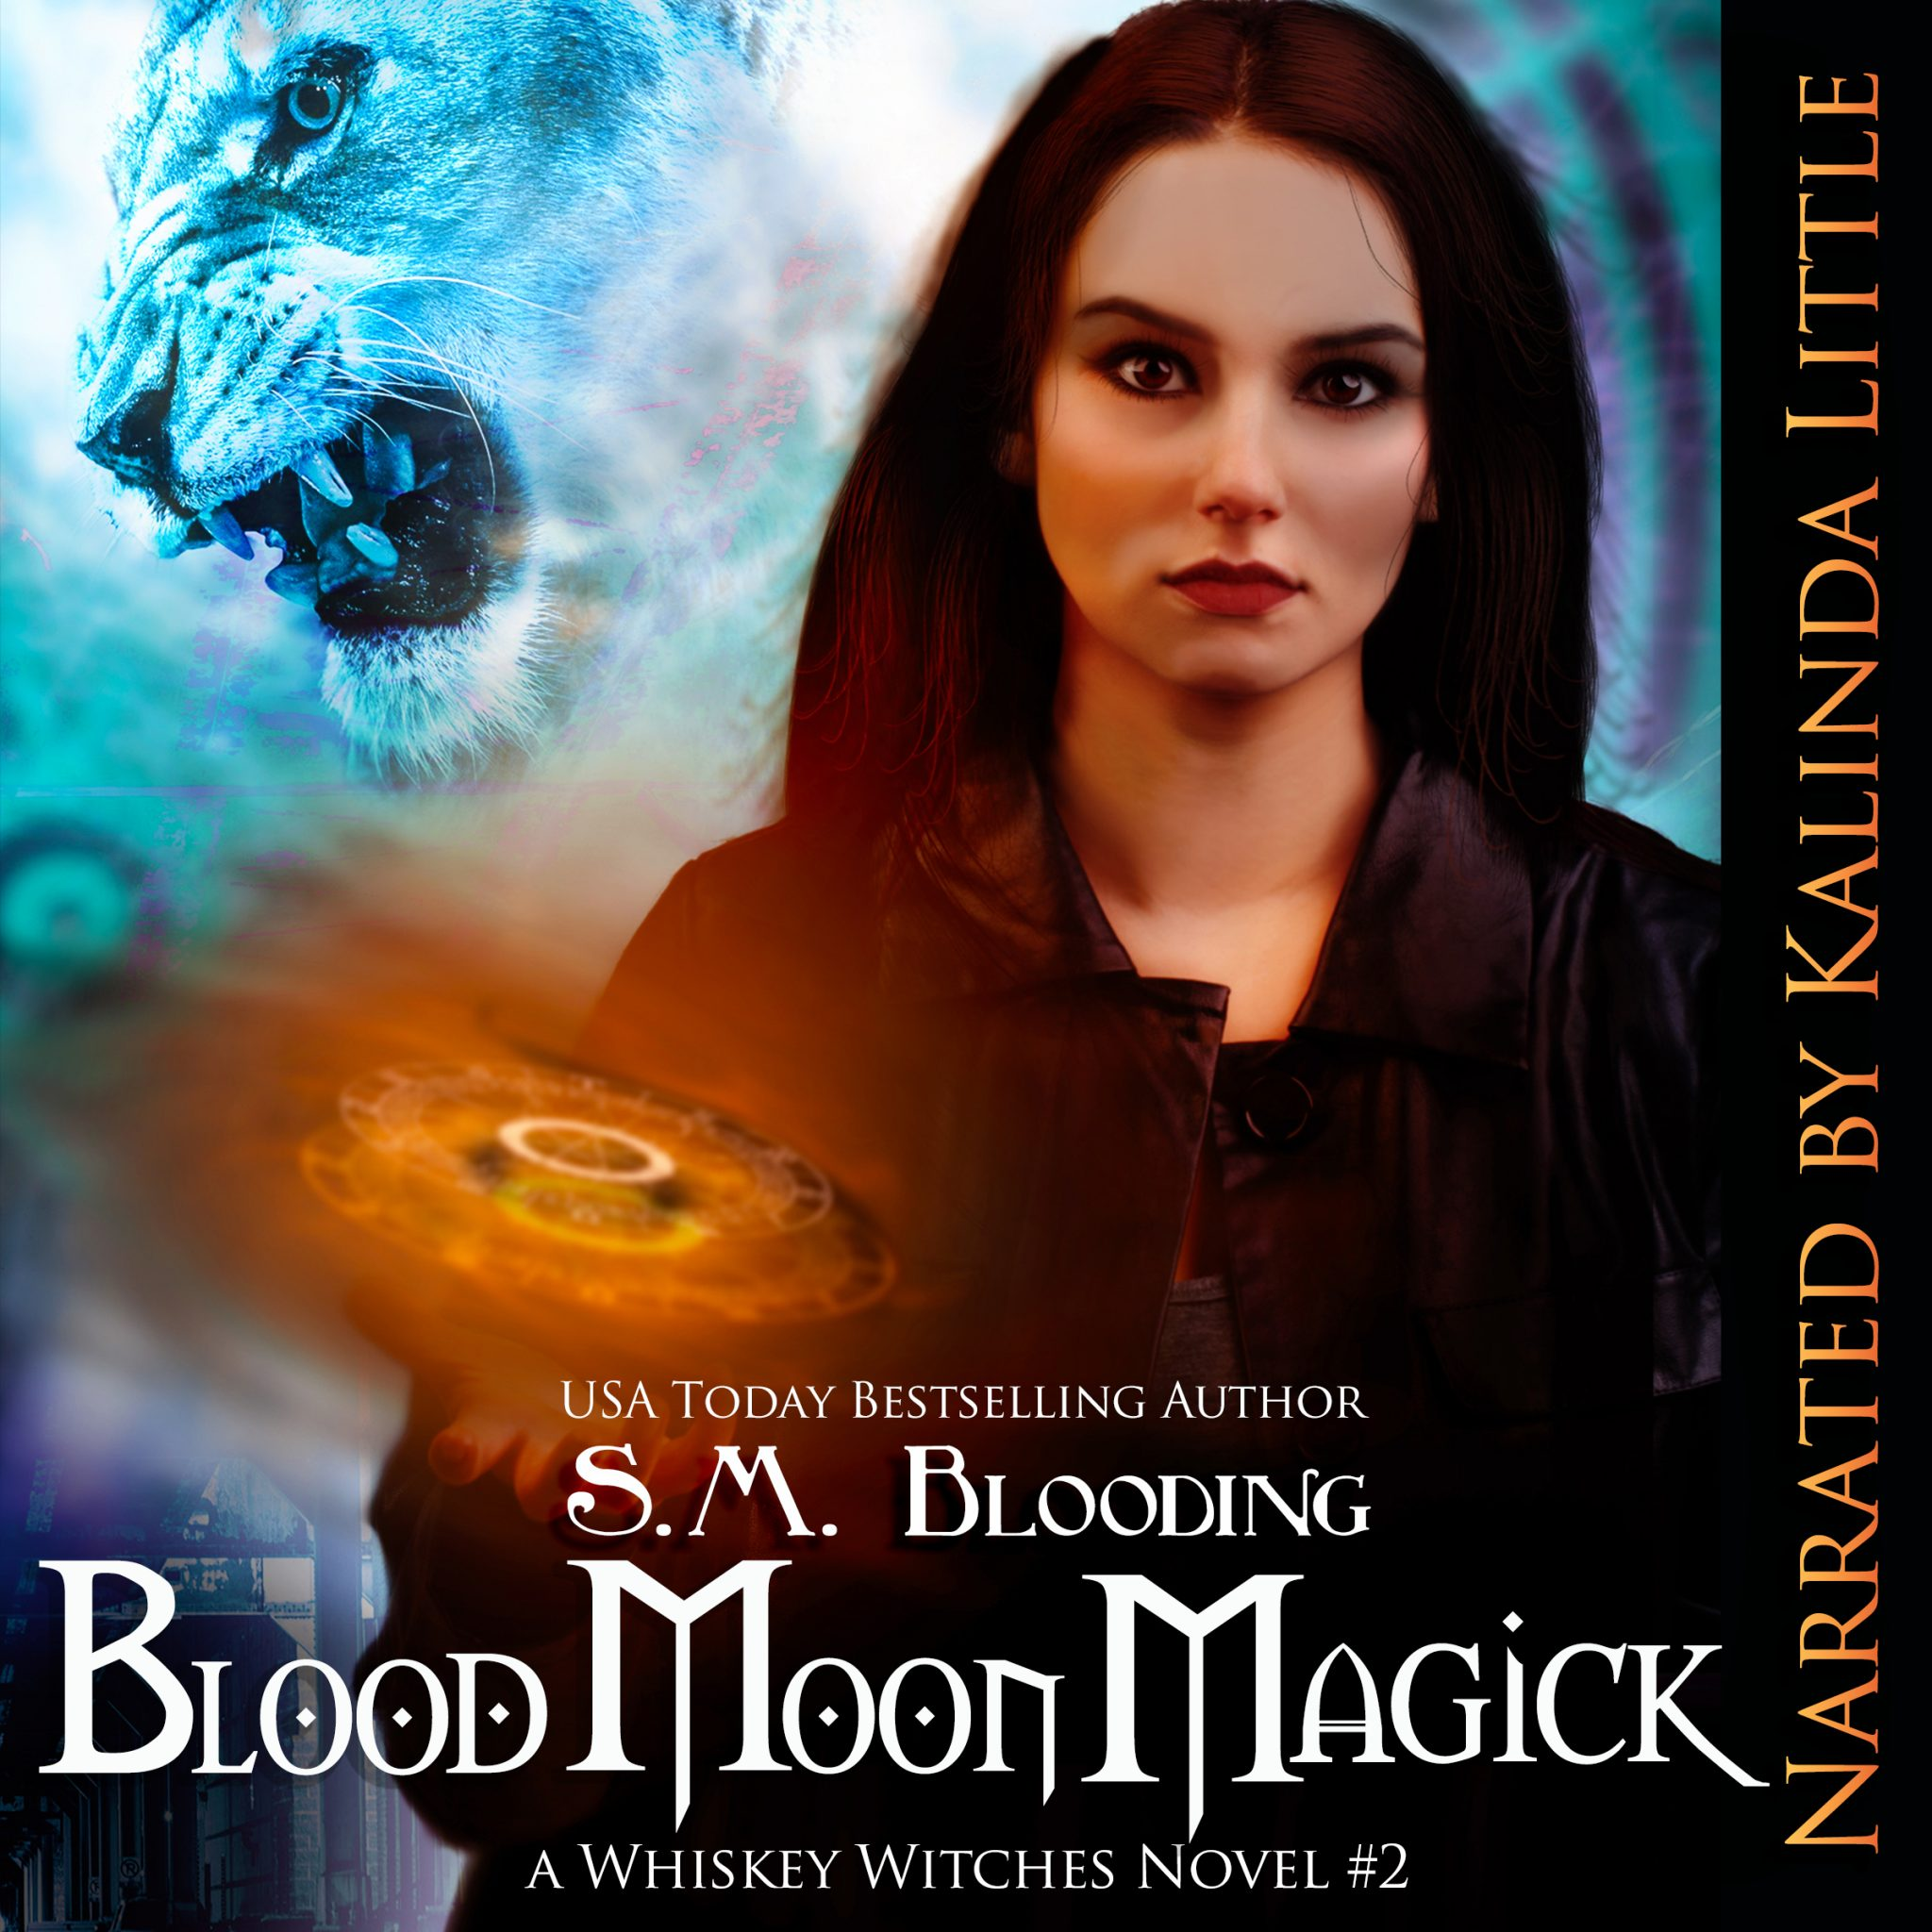 Blood Moon Magick Audiobook Tour